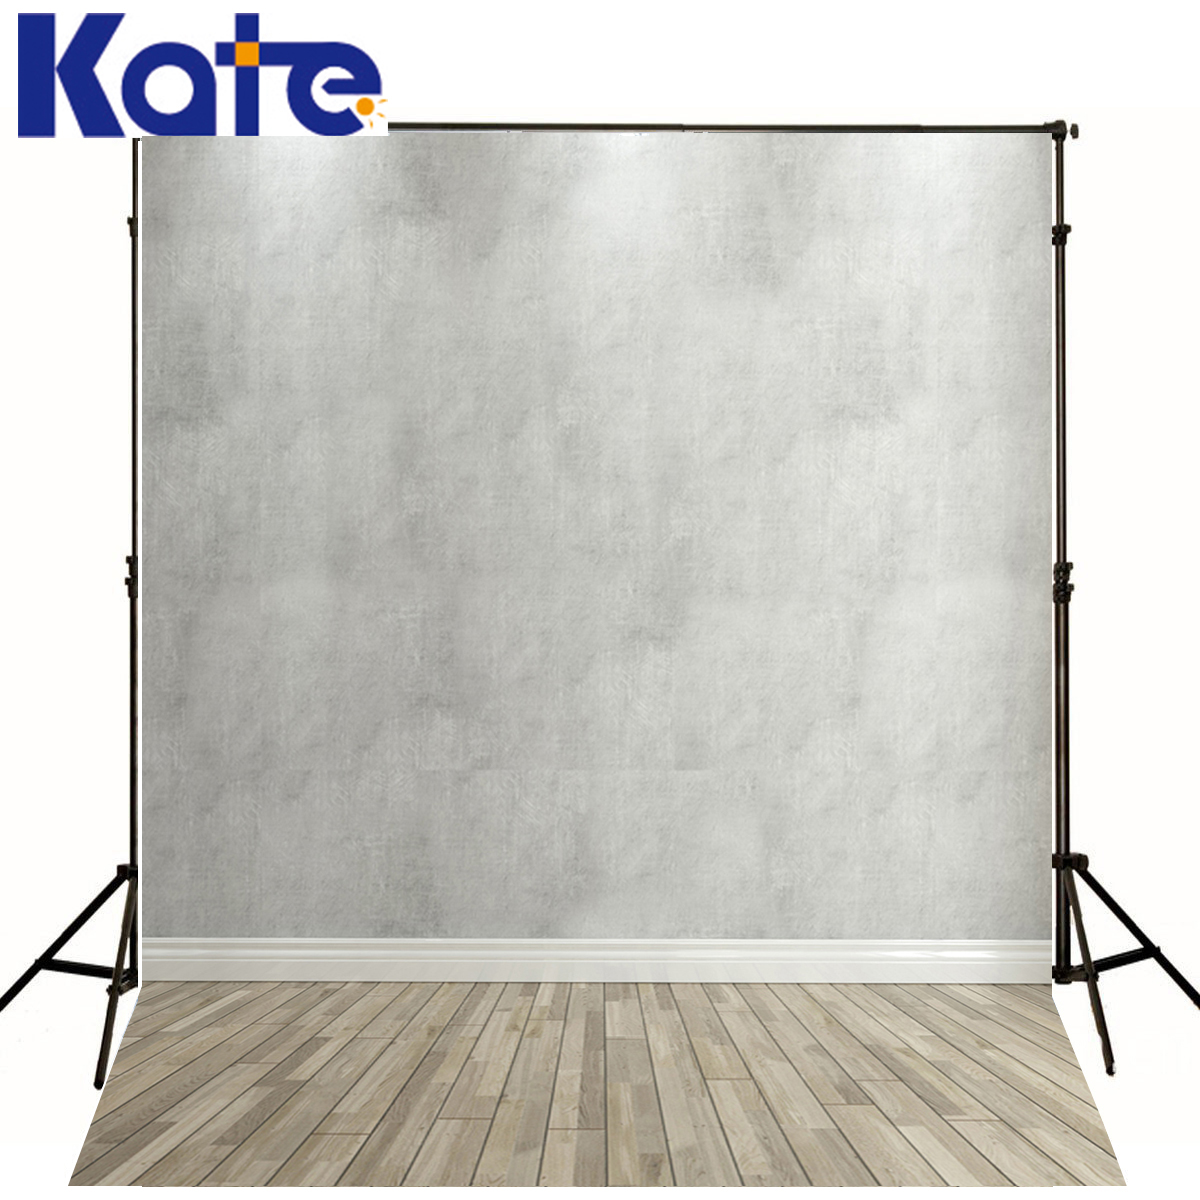 Kate Wood Background Photography Solid White Wall Backdrop Photo Wood Floor Photocall Backgrounds For Photo Studio J01676 цена